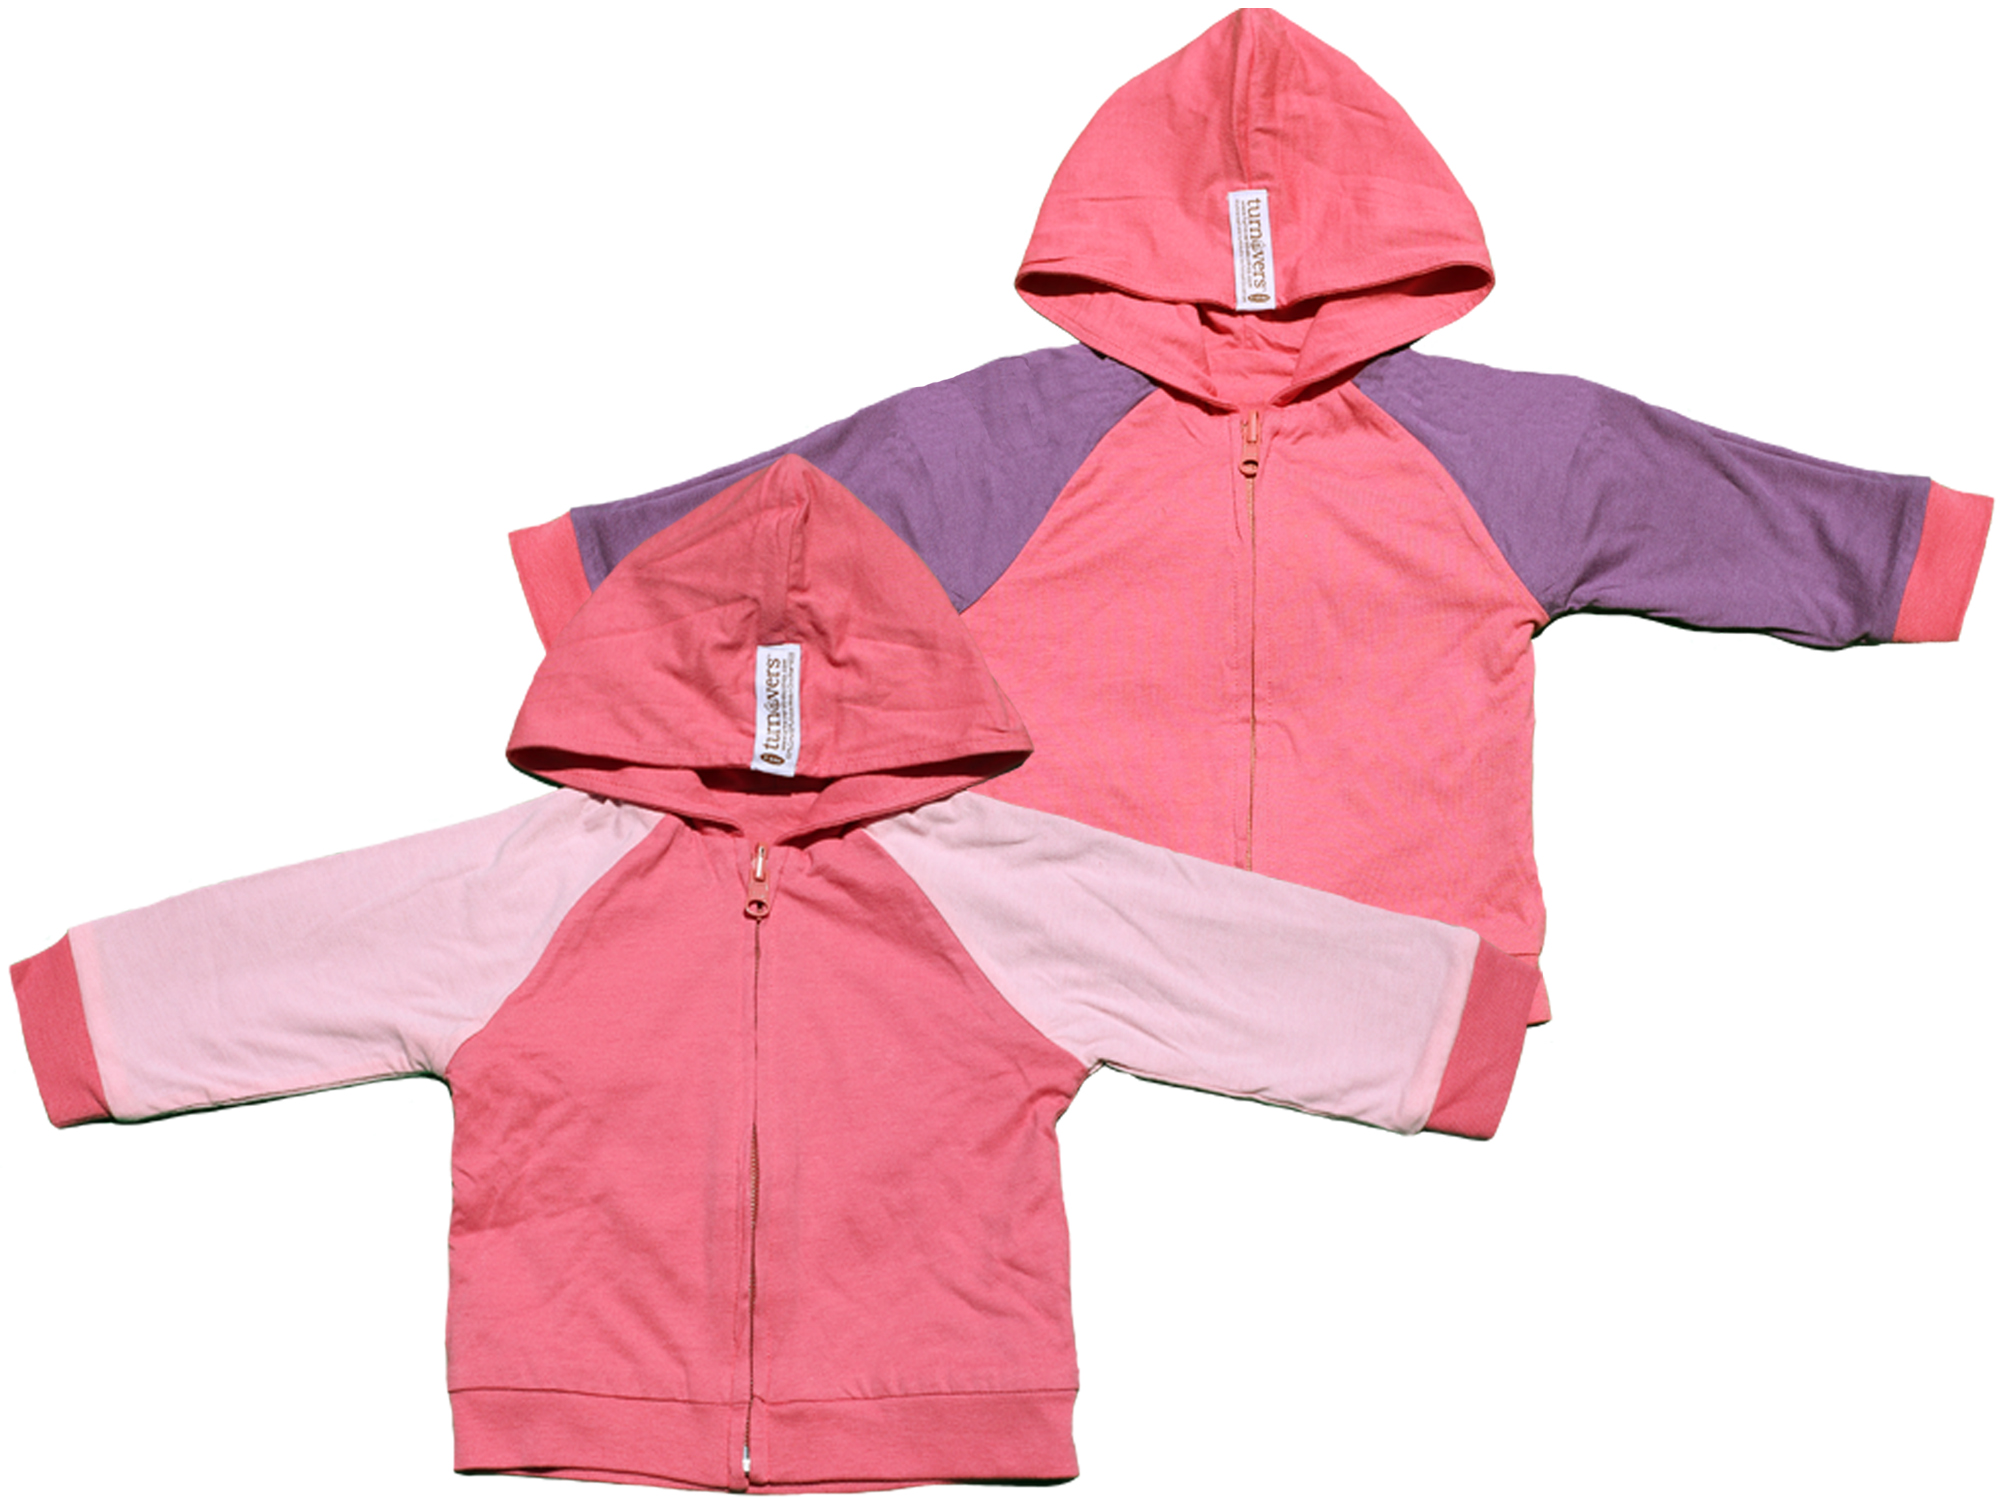 TURNOVERS REVERSIBLE Girls ZIP HOODIE.  COLOR: Rosebud WITH Petal/Grape Raglan SLEEVES. Signature Logo Embroidery in the back.